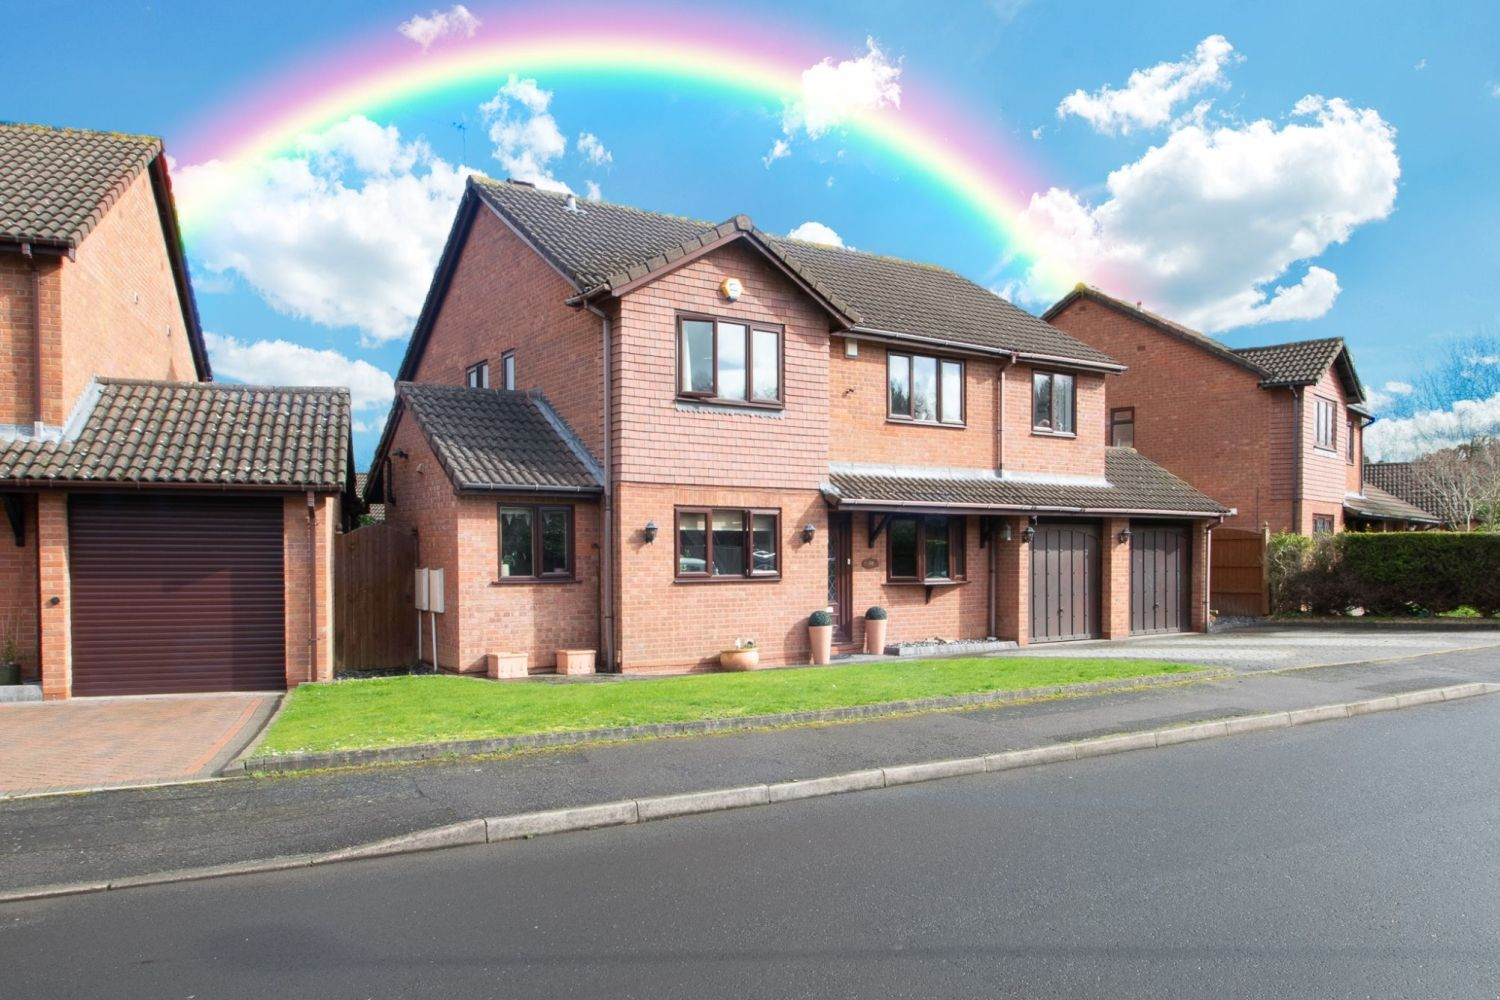 5 bed detached for sale in Melrose Avenue, Oldswinford, Stourbridge  - Property Image 1